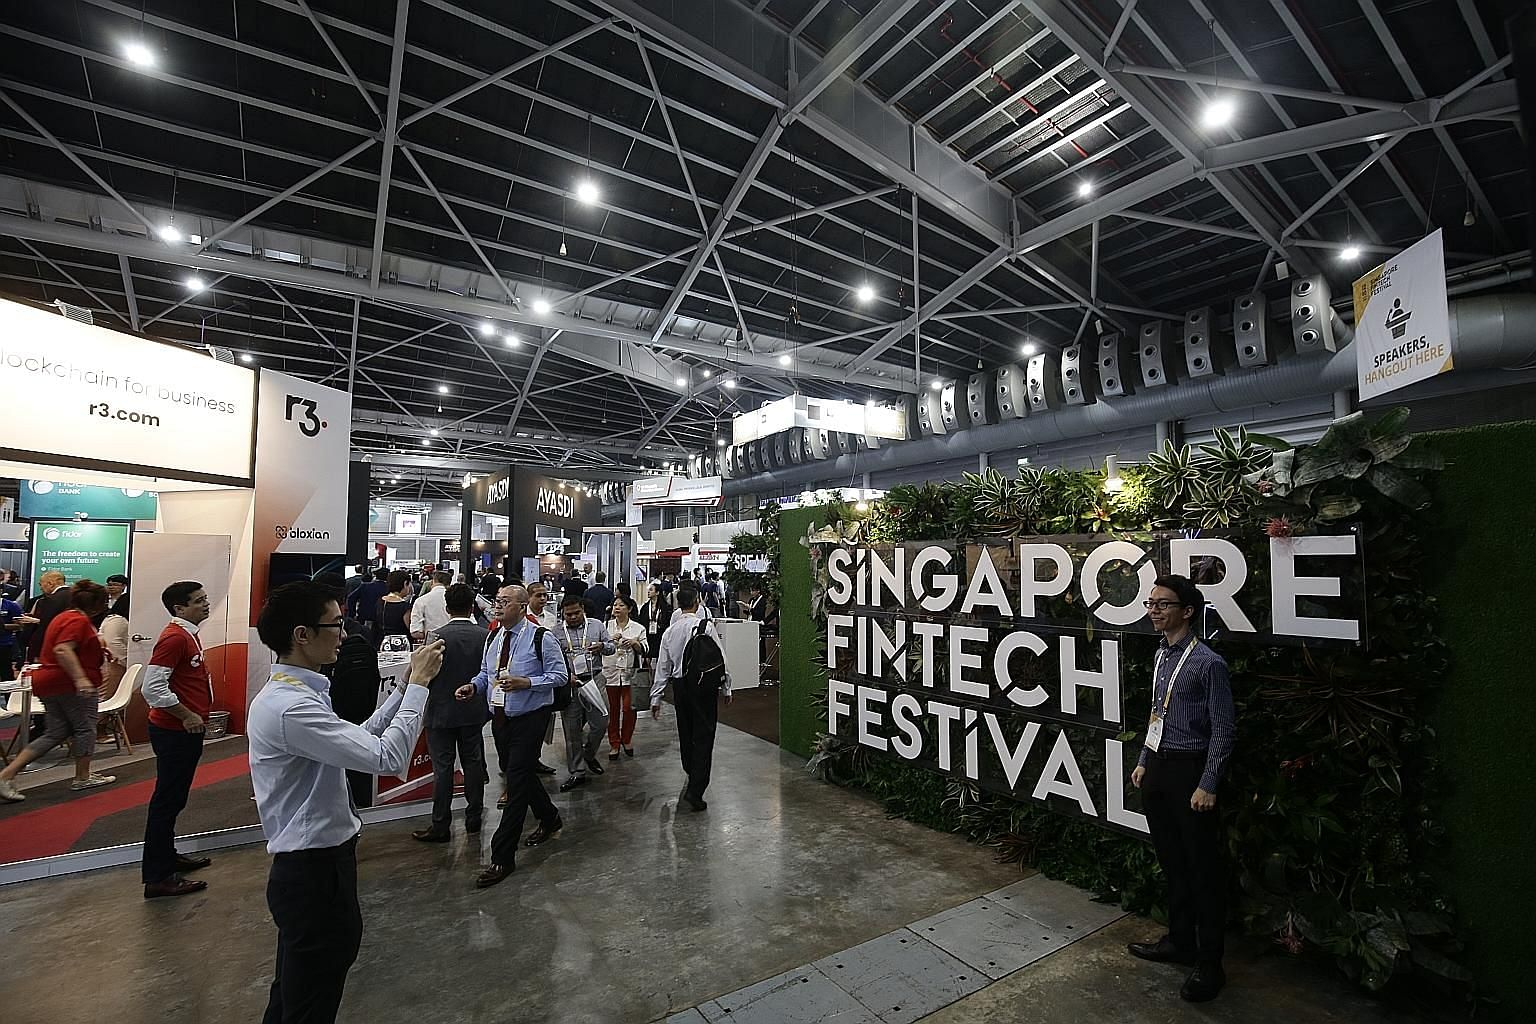 Last year's Singapore FinTech Festival at the Singapore Expo. The fintech industry here is estimated to employ 6,500 to 10,000 people, based on the extrapolated results of a survey this year by the Singapore FinTech Association and audit firm PwC Sin